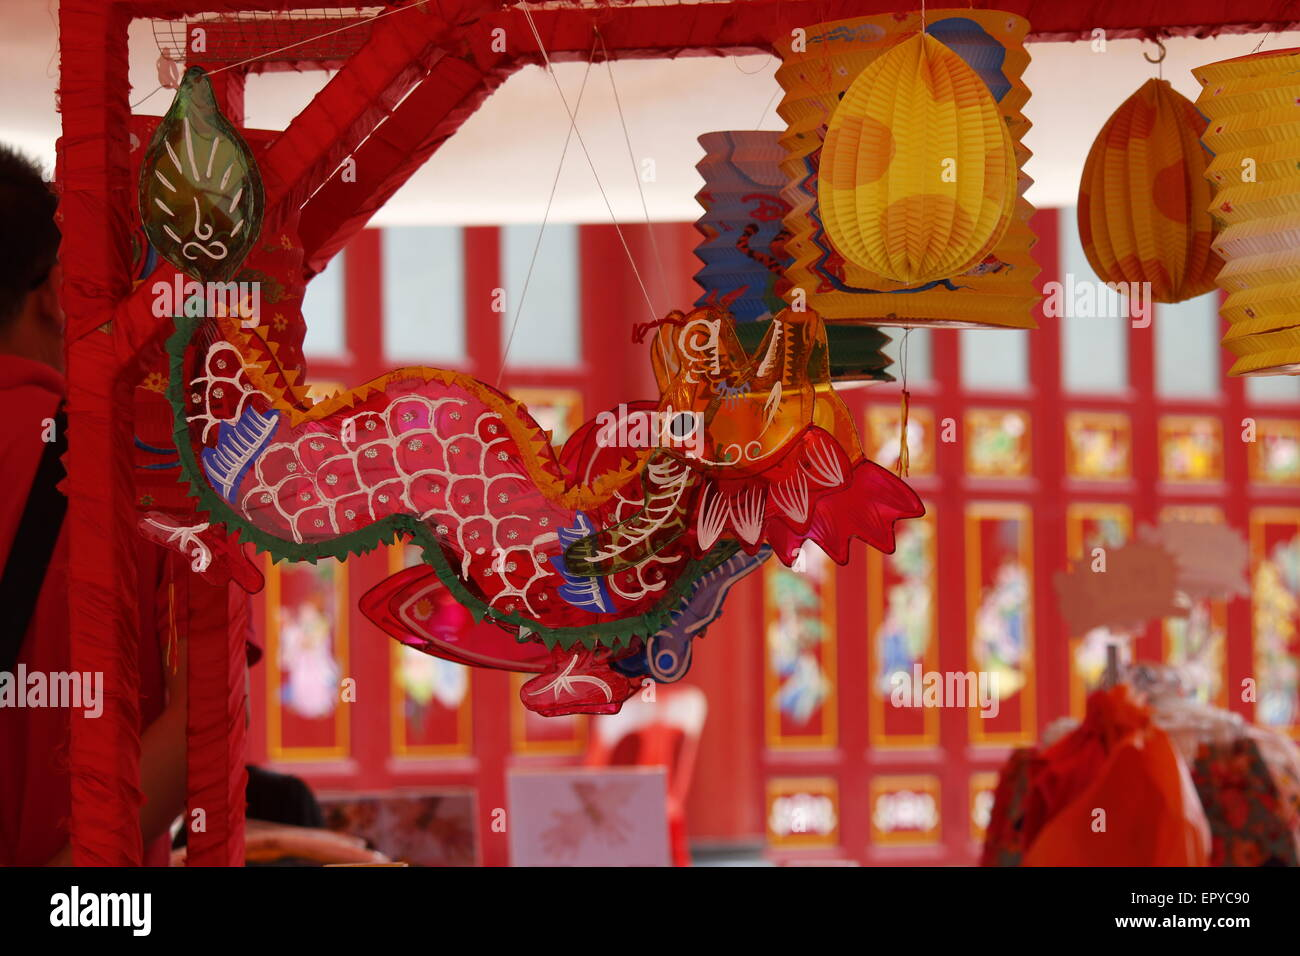 0a51aa4fd paper lanterns for mid-Autumn festival Stock Photo: 82966268 - Alamy